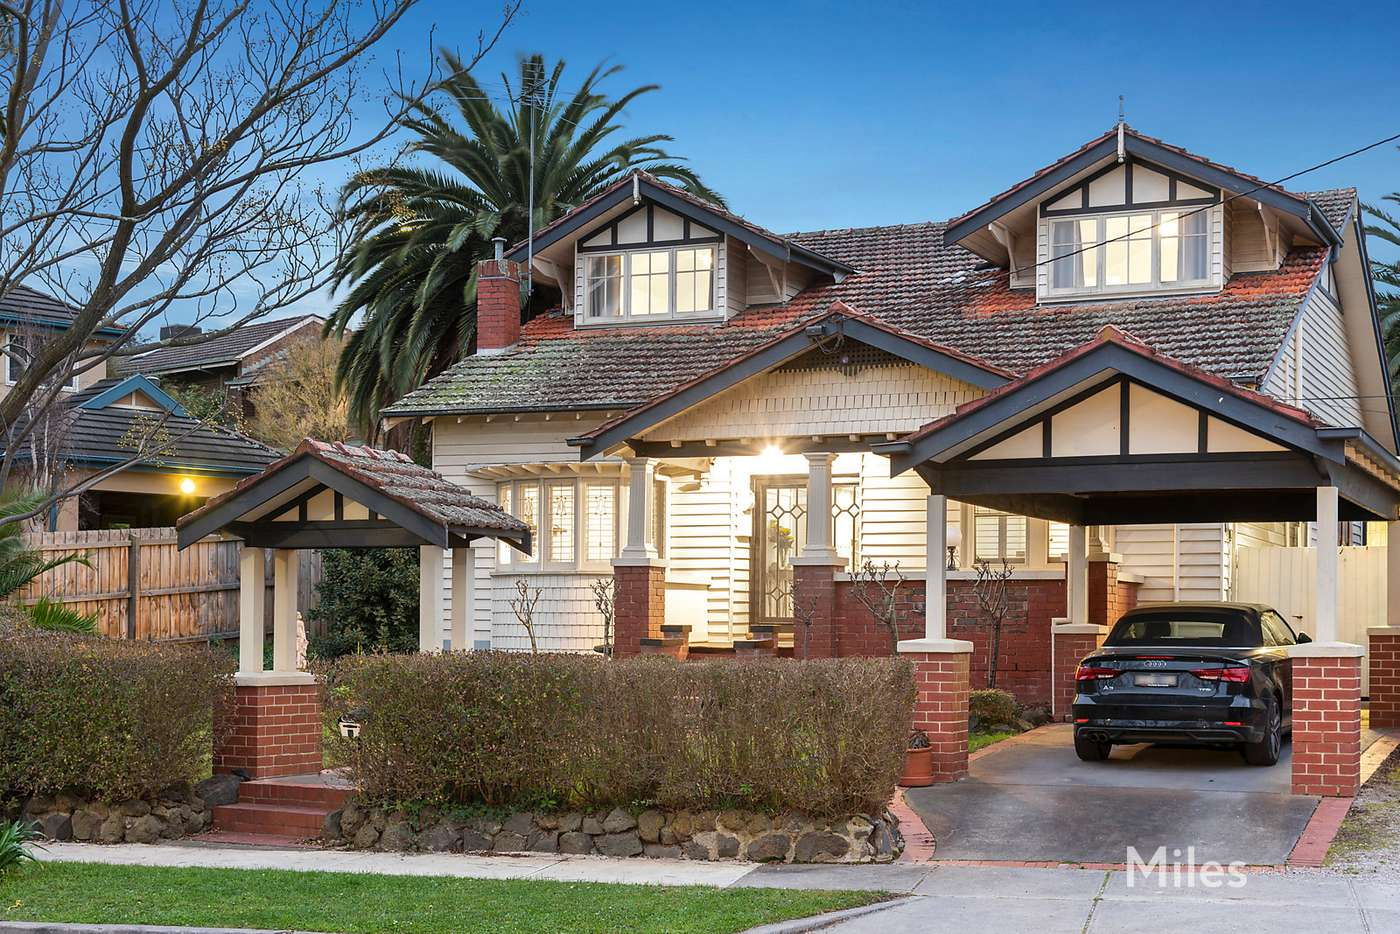 Main view of Homely house listing, 9 Townsend Street, Ivanhoe VIC 3079